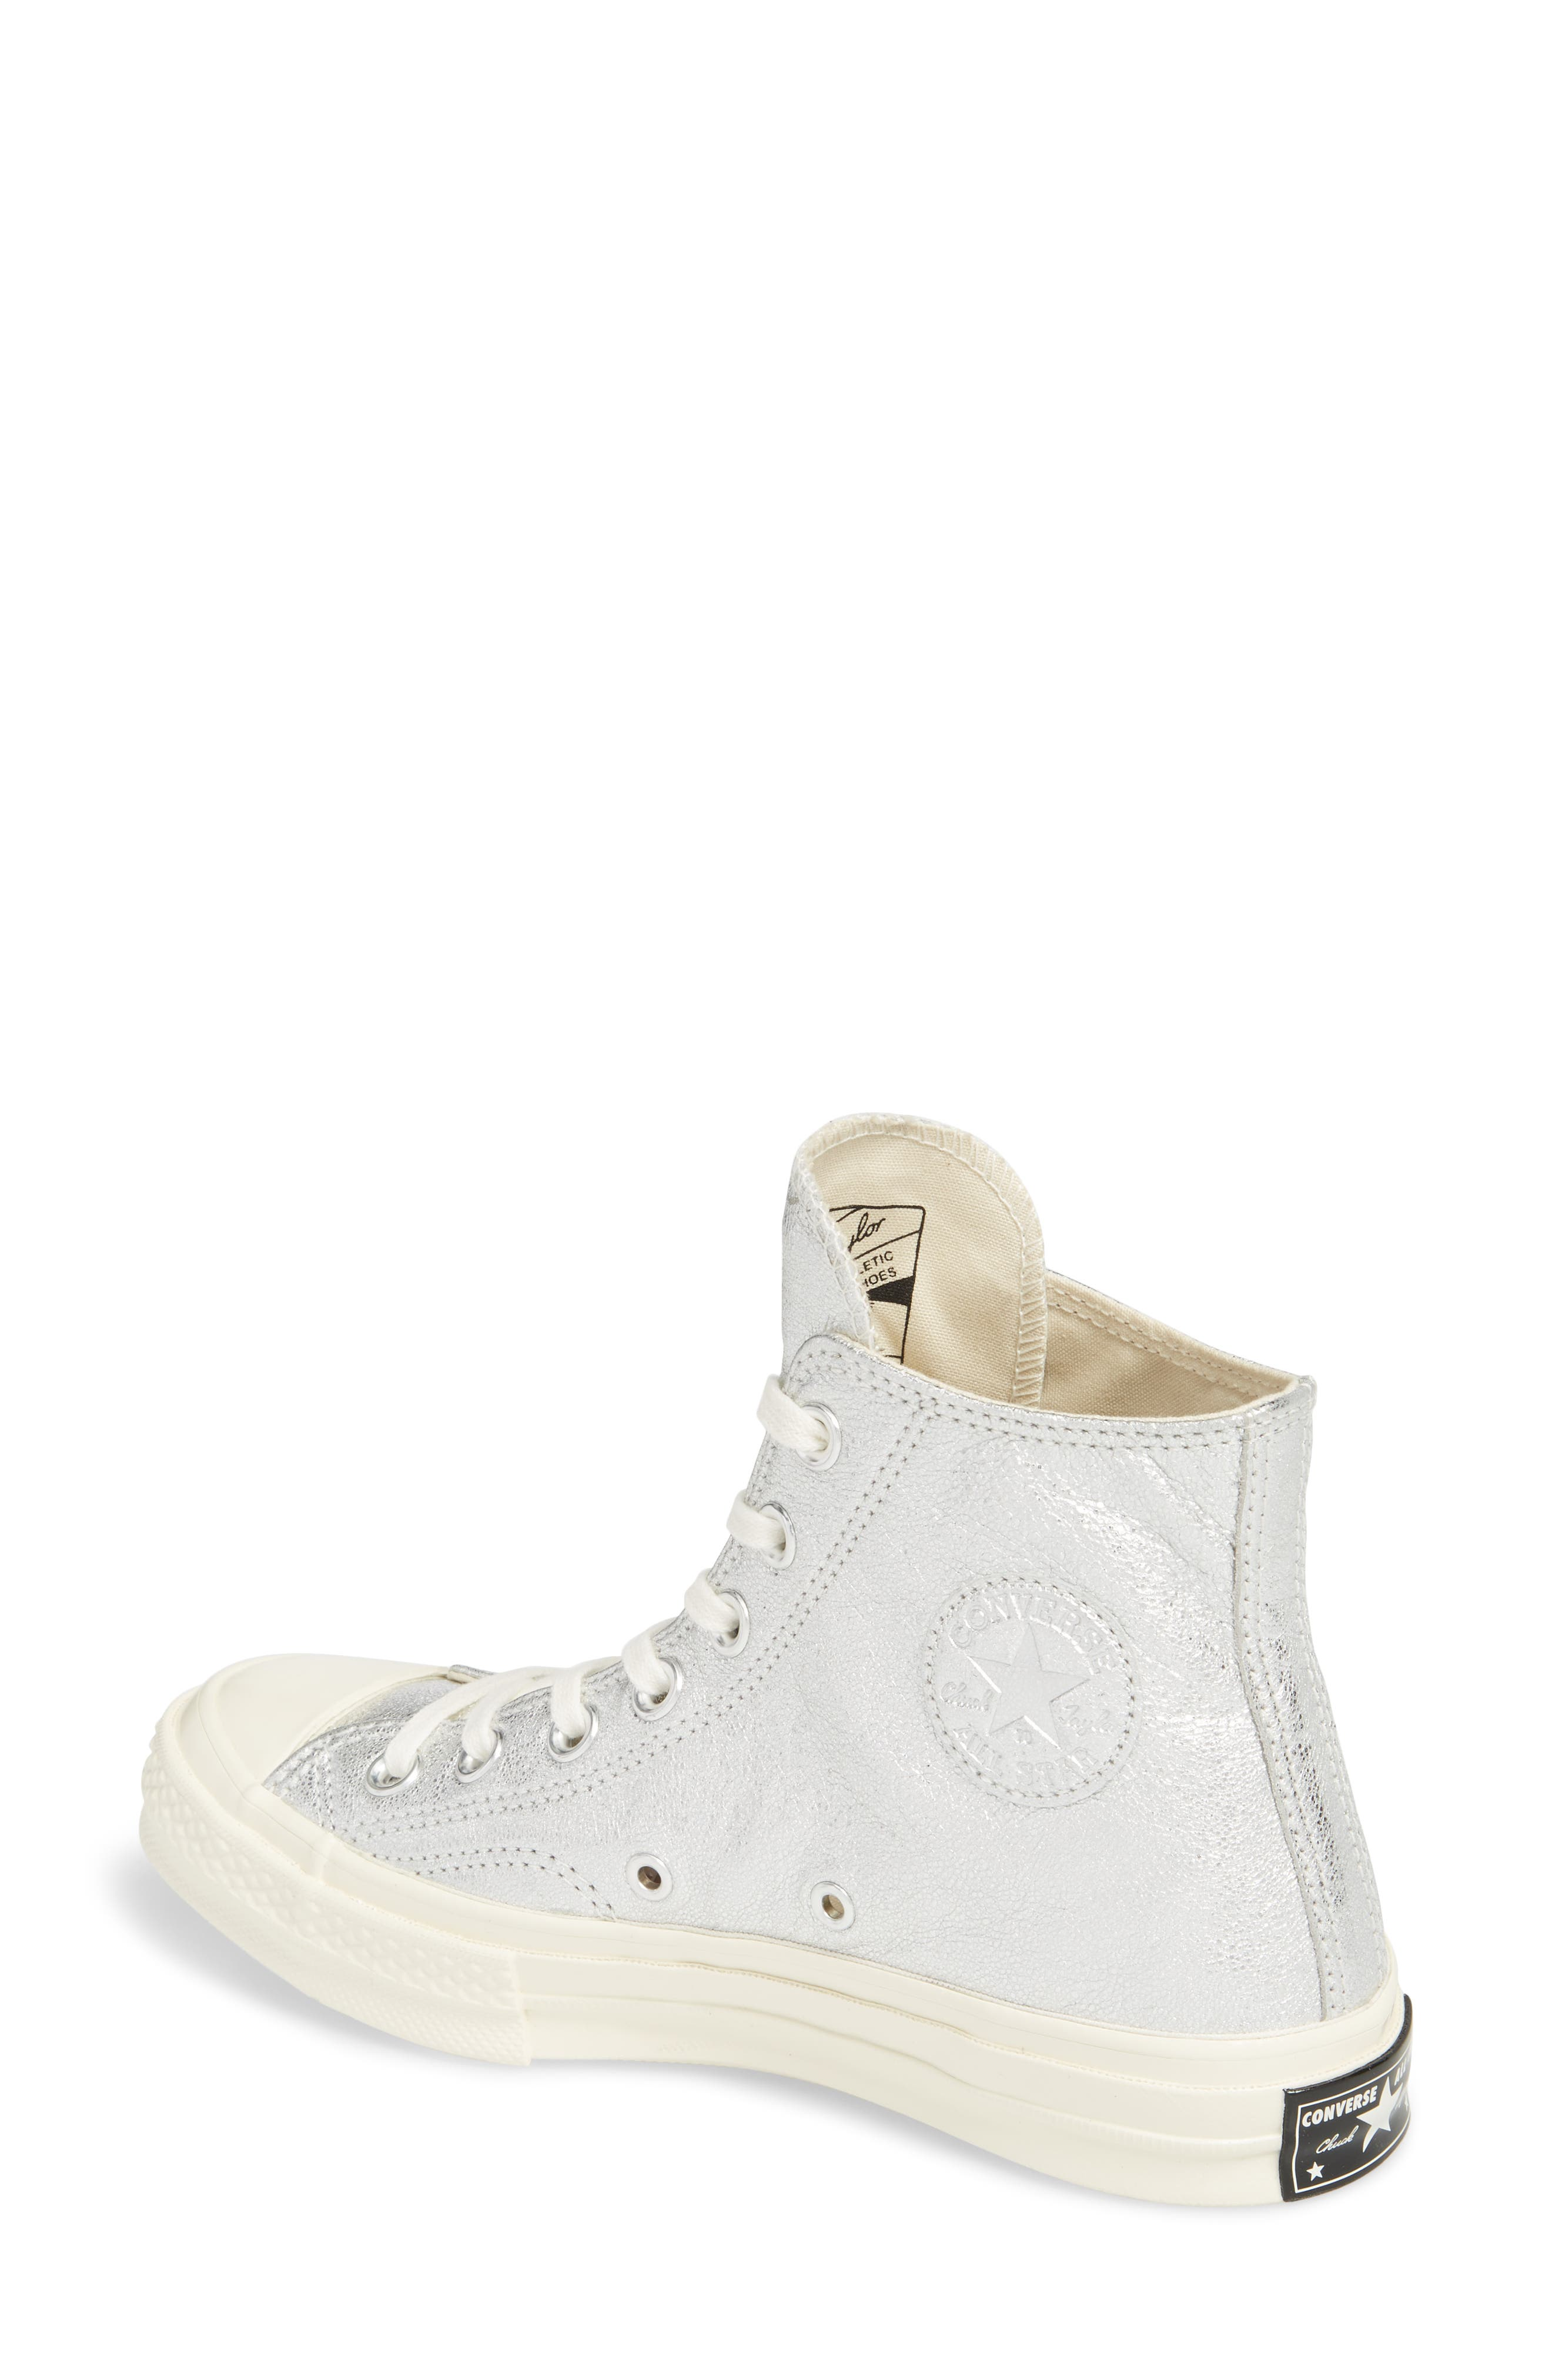 Chuck Taylor<sup>®</sup> All Star<sup>®</sup> Heavy Metal 70 High Top Sneaker,                             Alternate thumbnail 4, color,